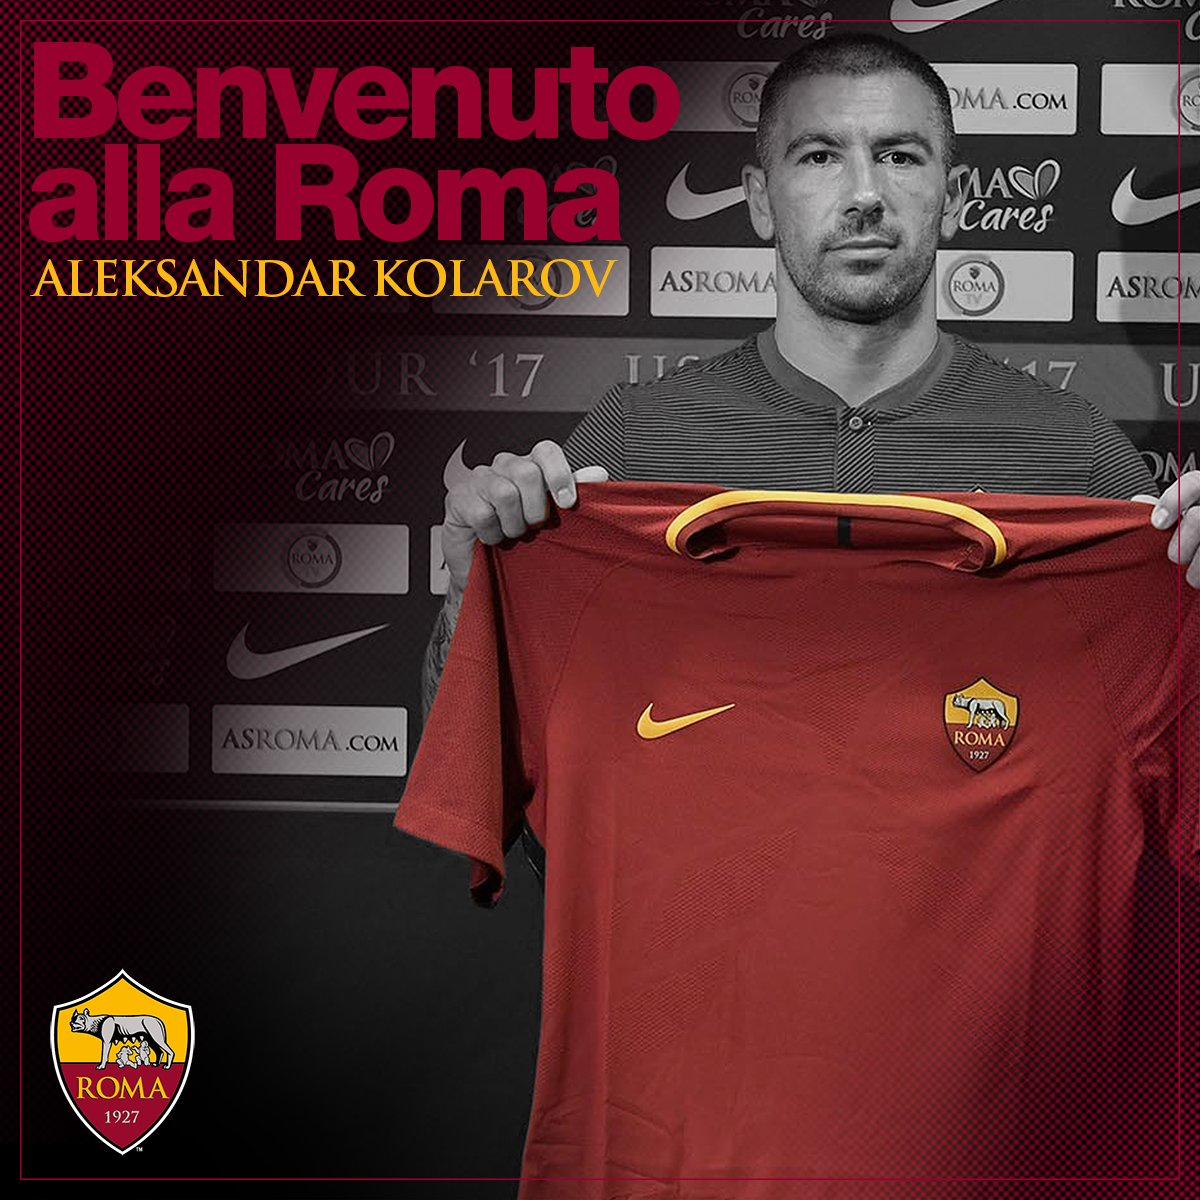 AS Roma on Twitter: